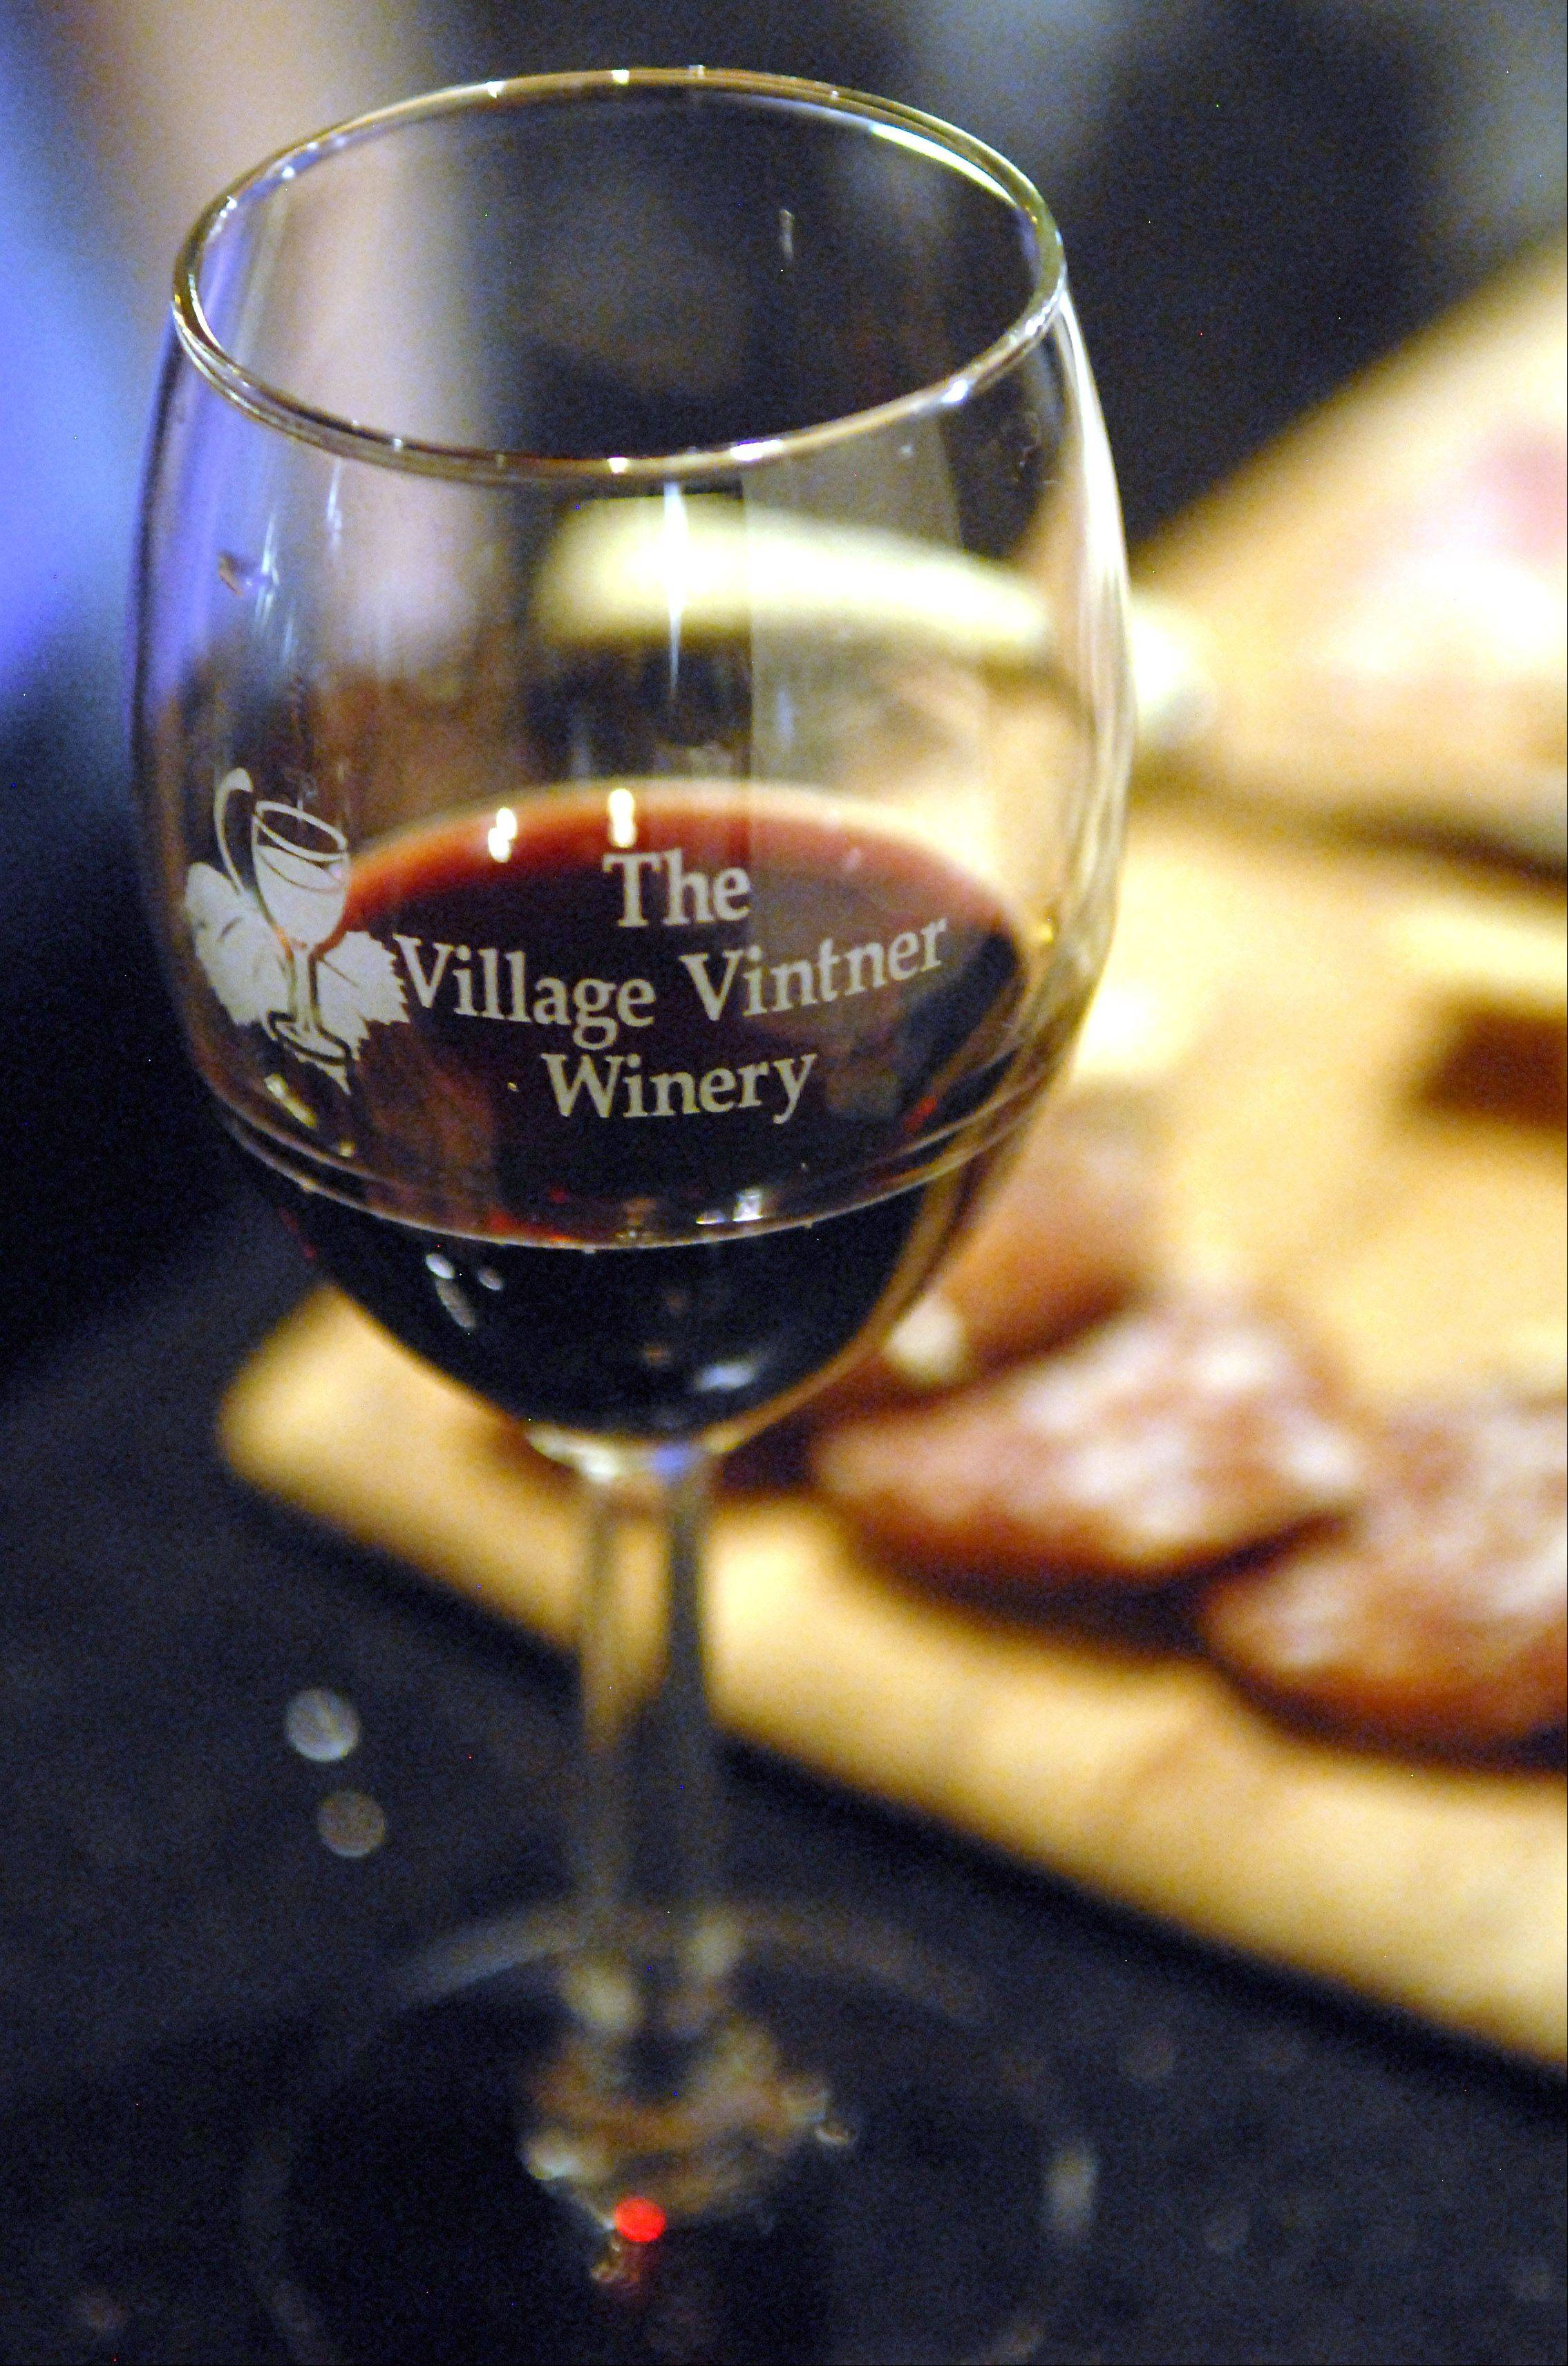 Village Vitner in Algonquin is a winery, brewery and restaurant.